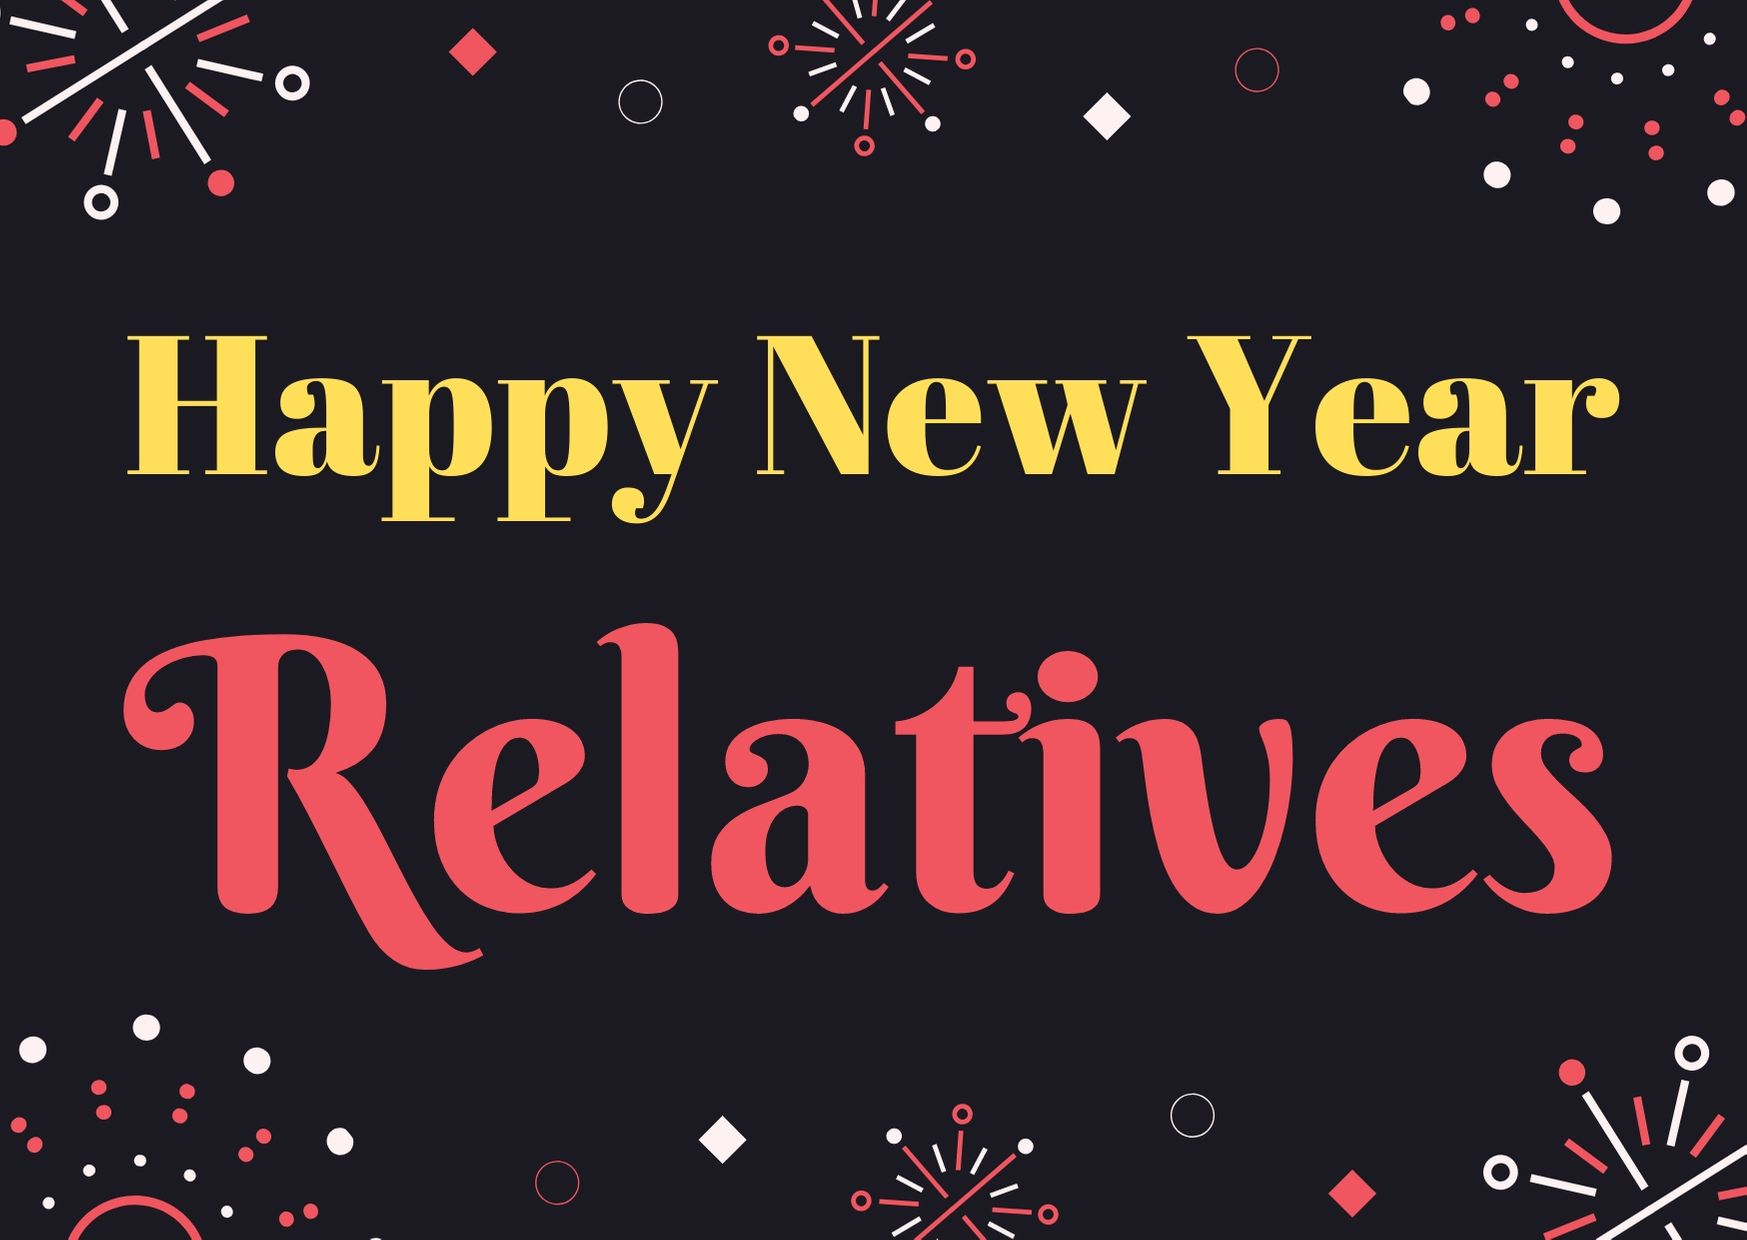 Happy New Year 2021 Wishes For Relatives